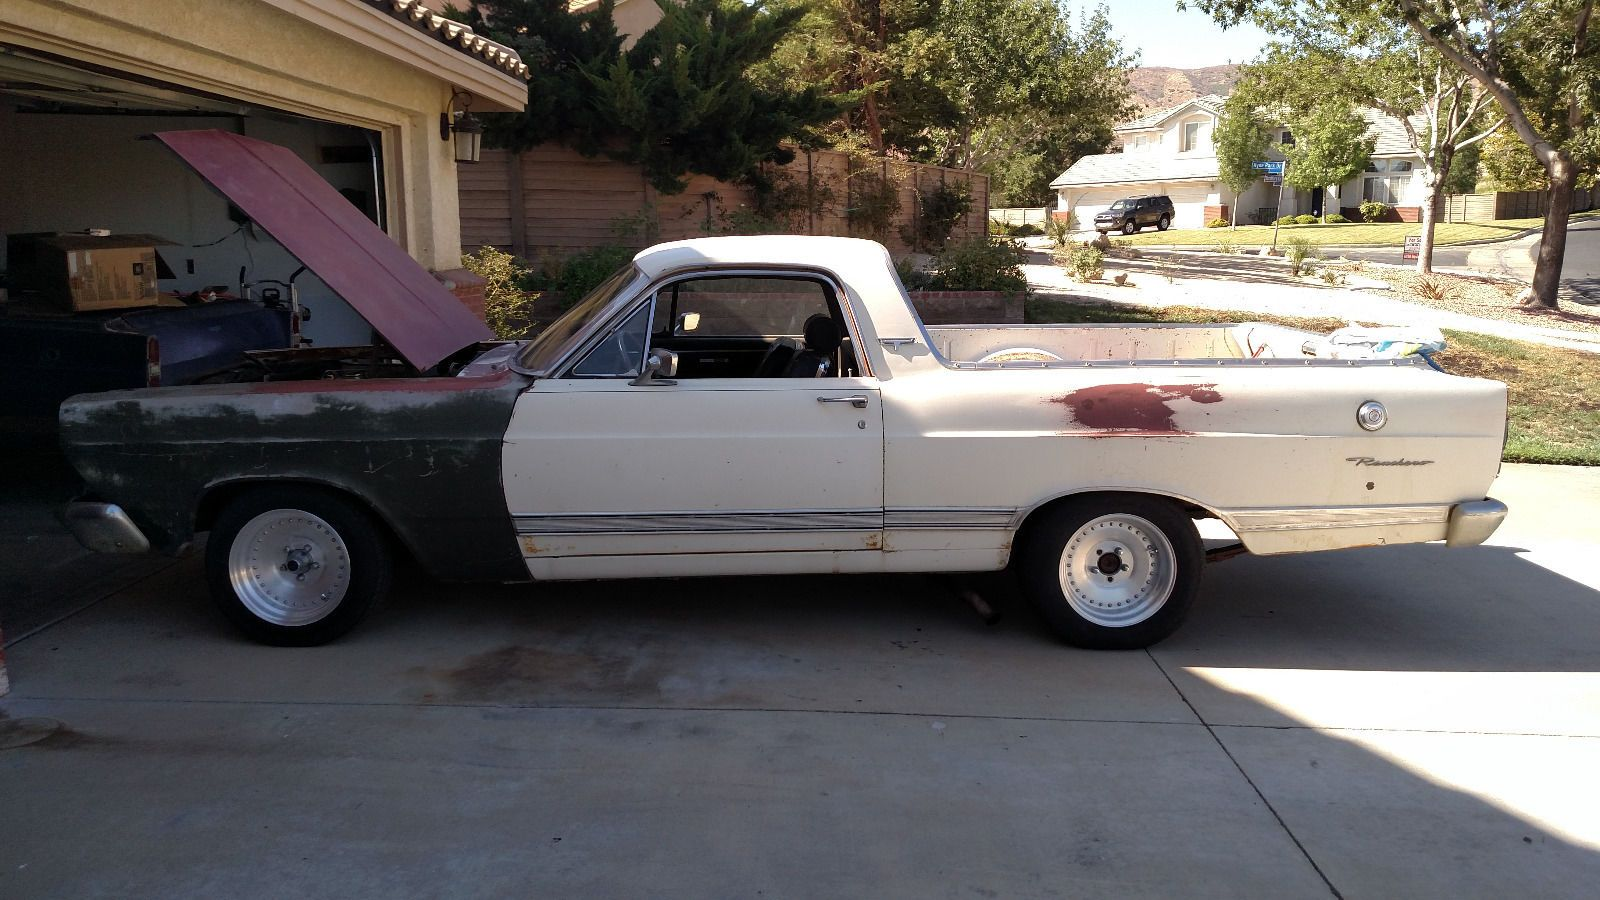 1967 Ford Ranchero 500XL Project car | Project cars for sale ...